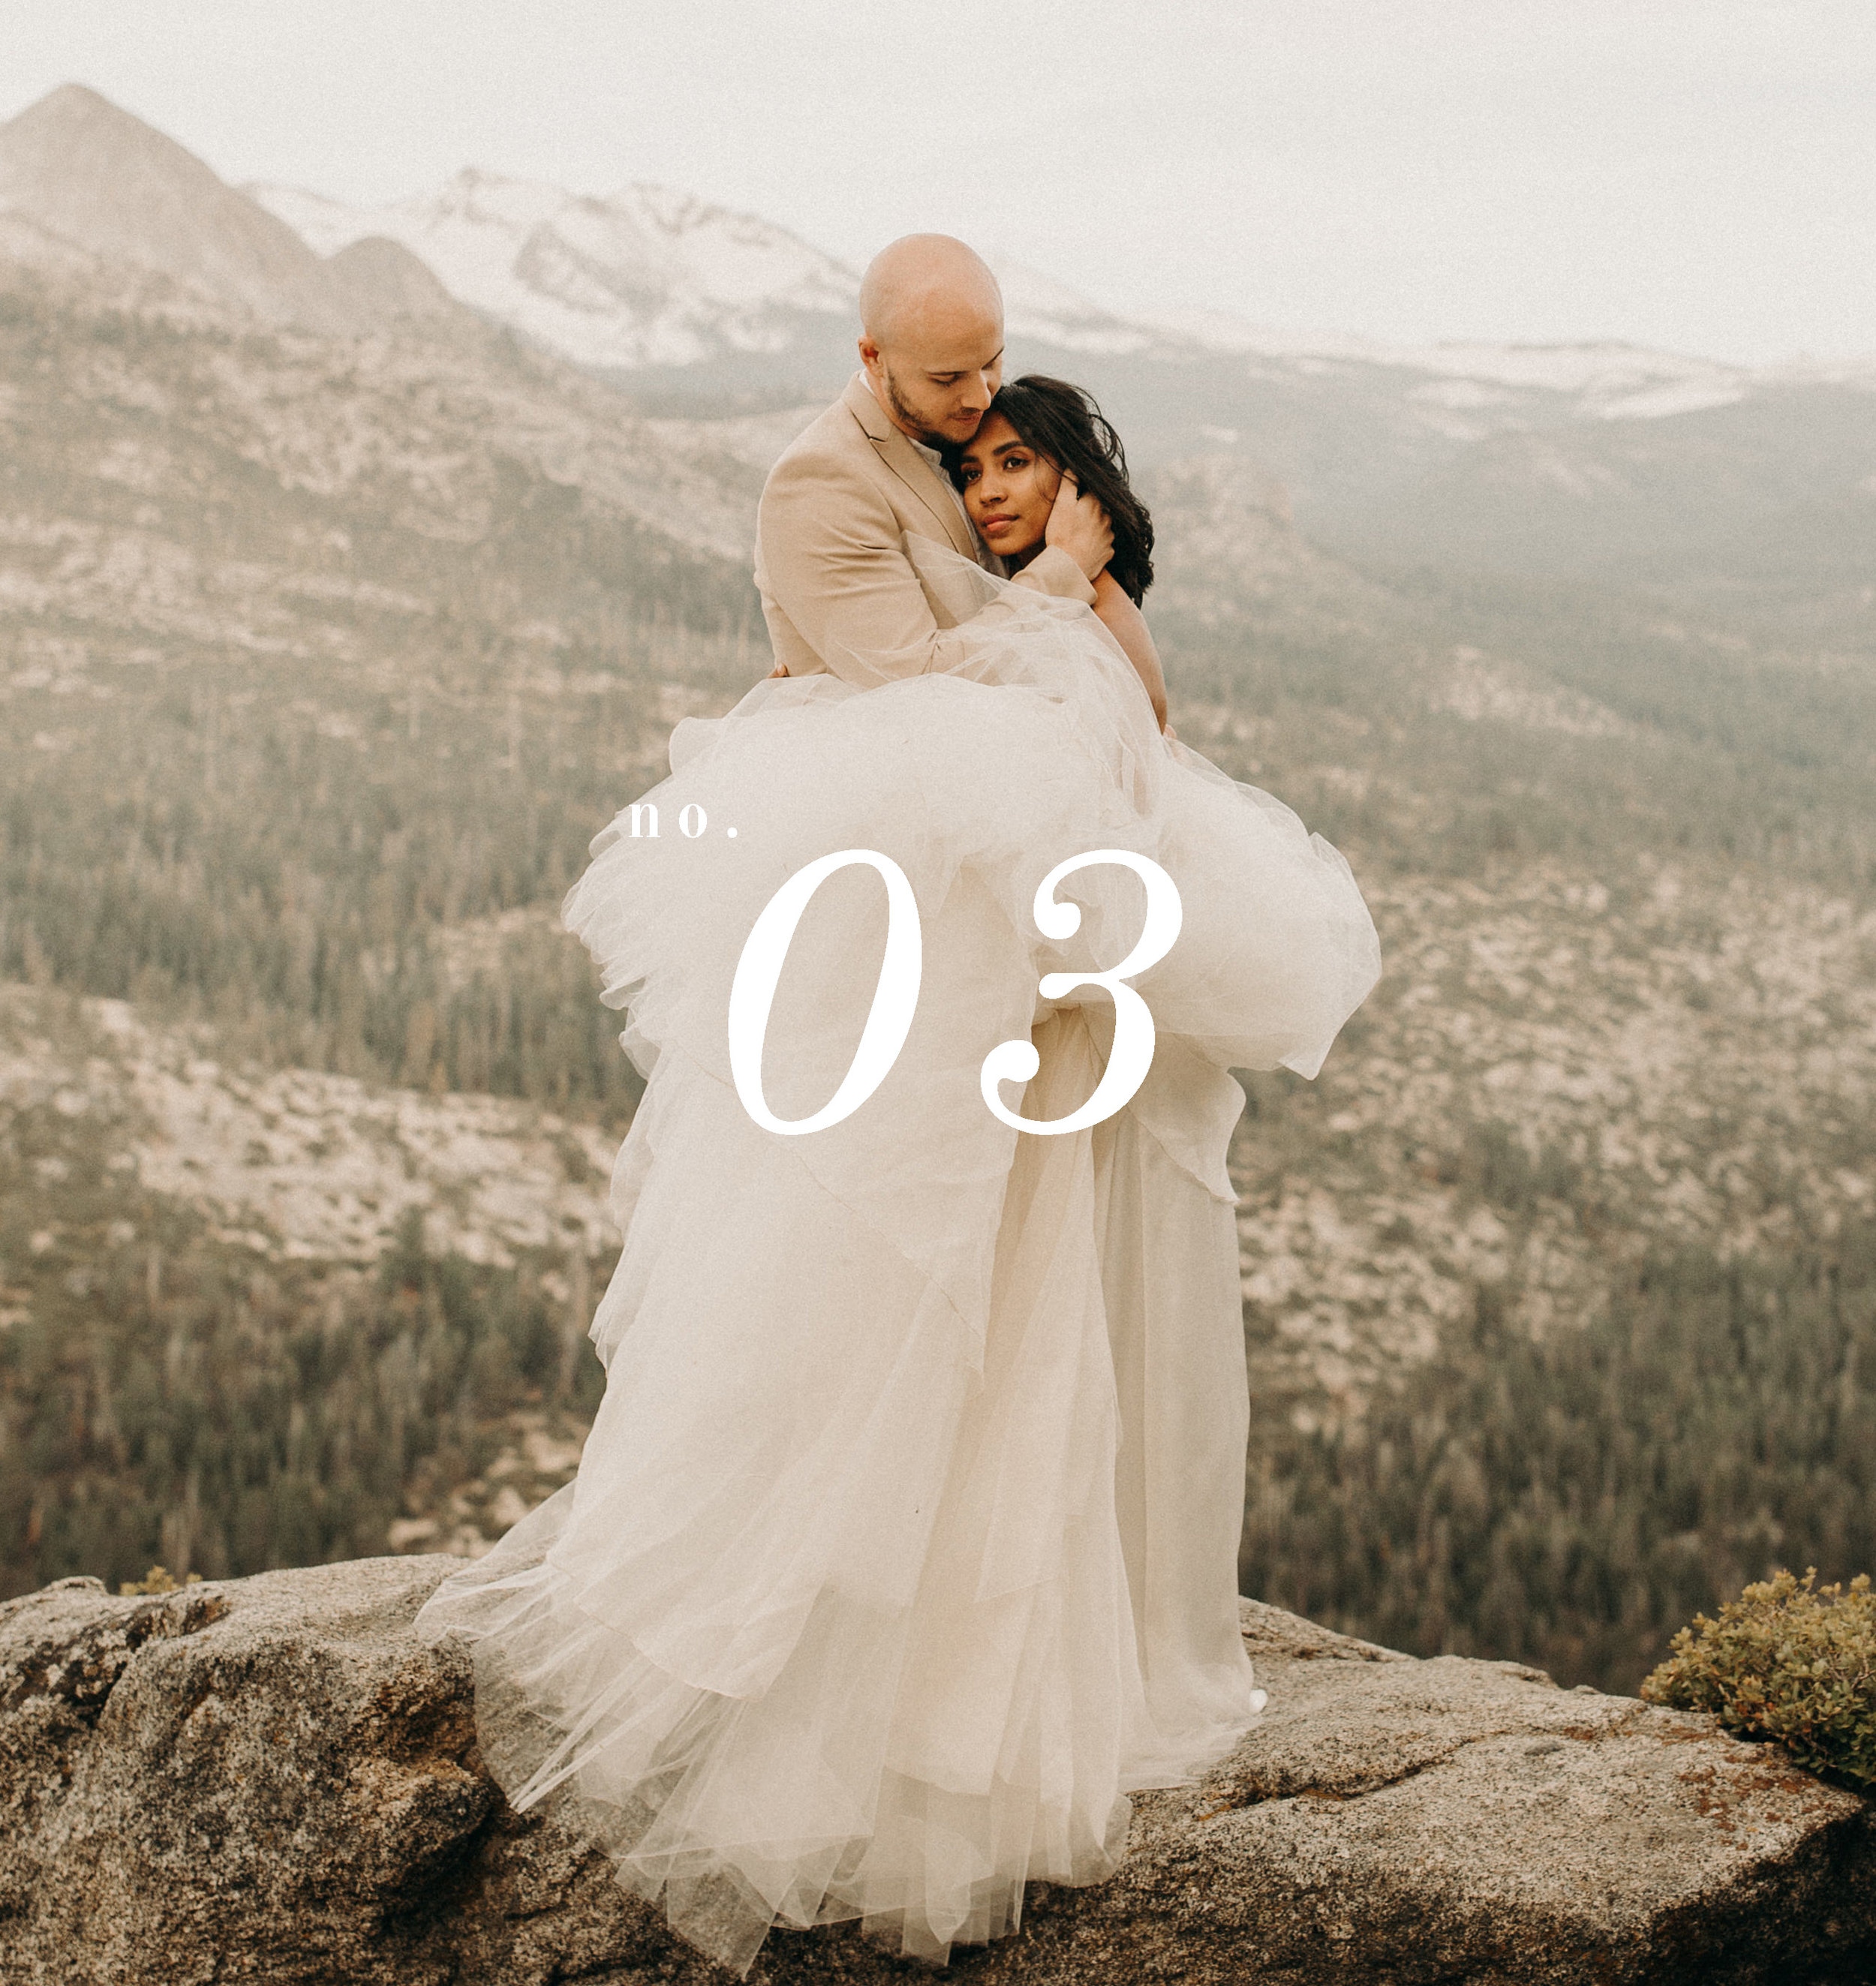 help + guidance - Through my process , I get to know you and help guide you. I can always recommend and create a custom list of amazing locations, spots, ideas, and vendors specifically for you and your location. You just need to pick your favorite spot , book your travel + any vendors, and pick out your wedding day outfit!